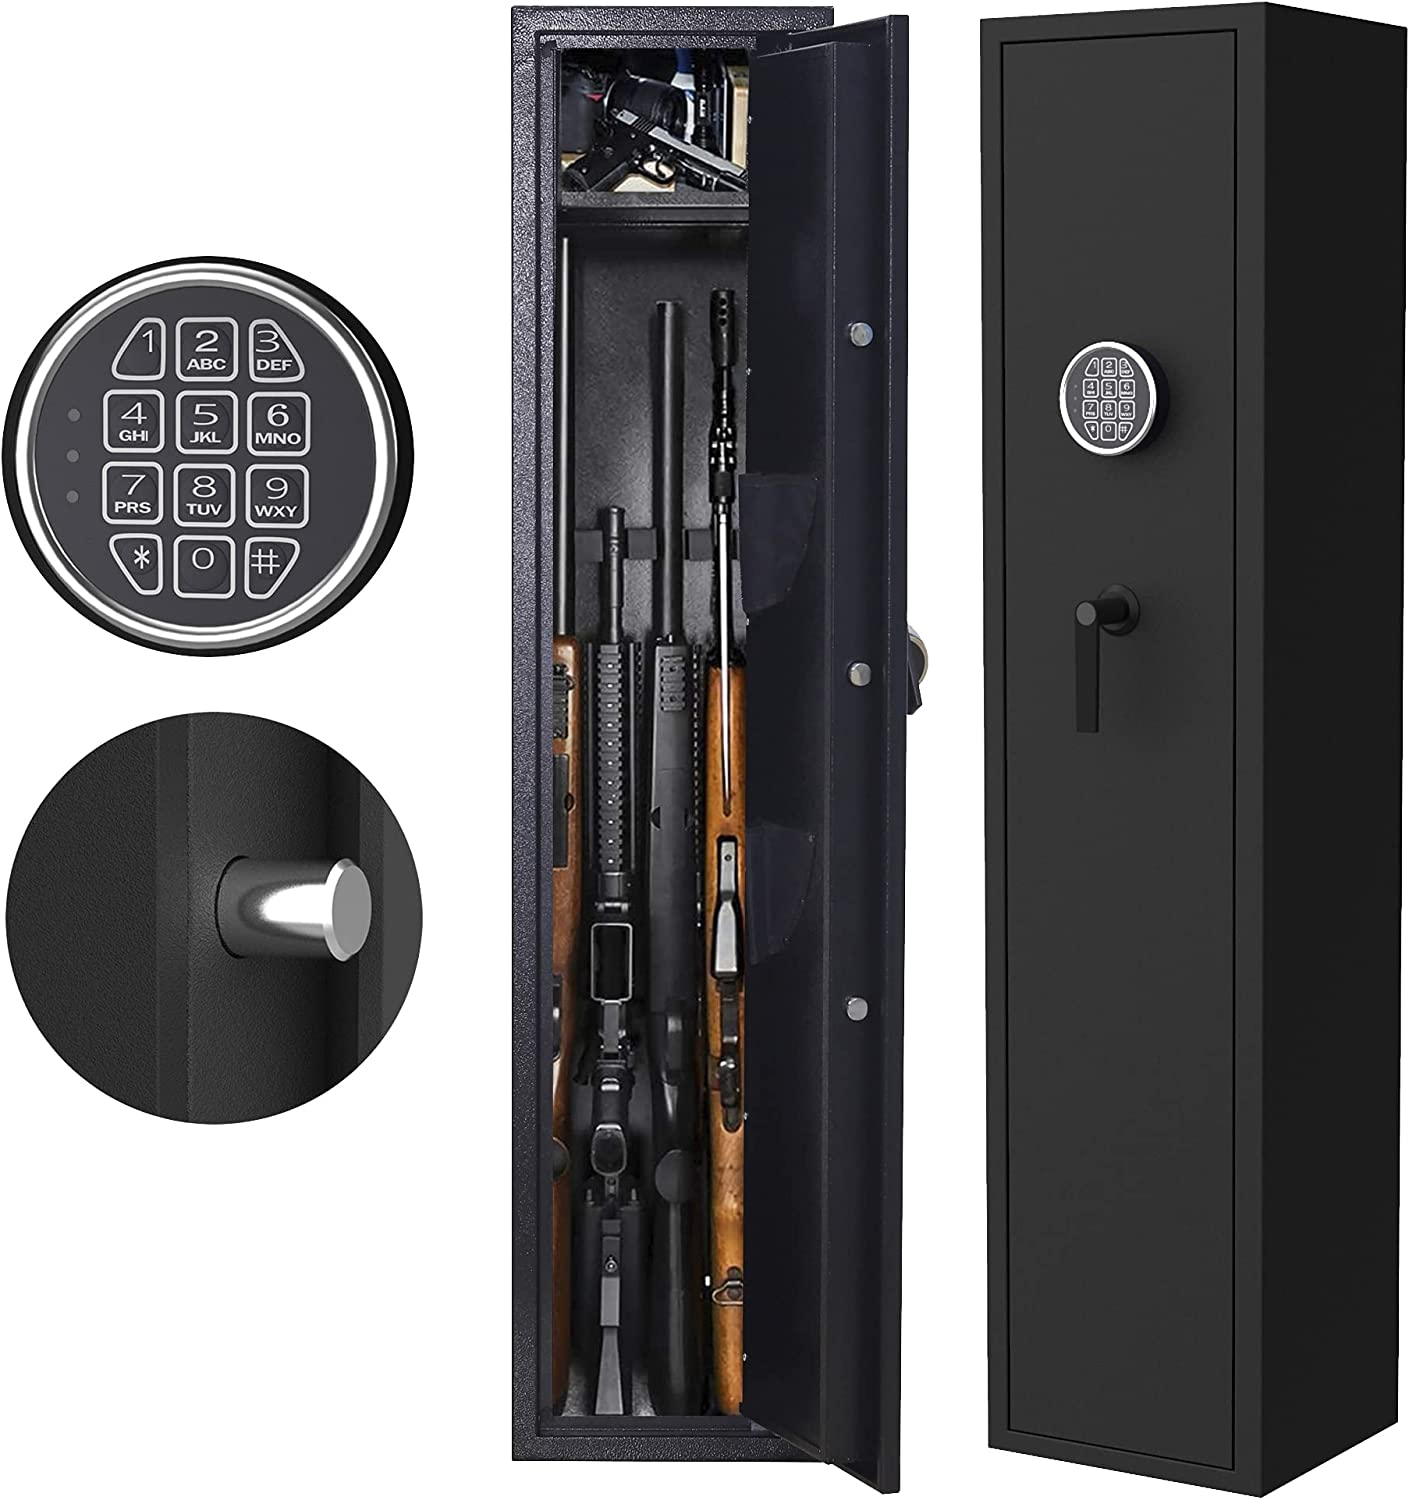 ZONLESON Gun Safe, Rifle Safe Gun Storage Cabinet 4-5 Rifle and 2 Pistol with Digital Keypad Lock,2 in 1 Quick Access Electronic Firearm Gun Security Cabinet